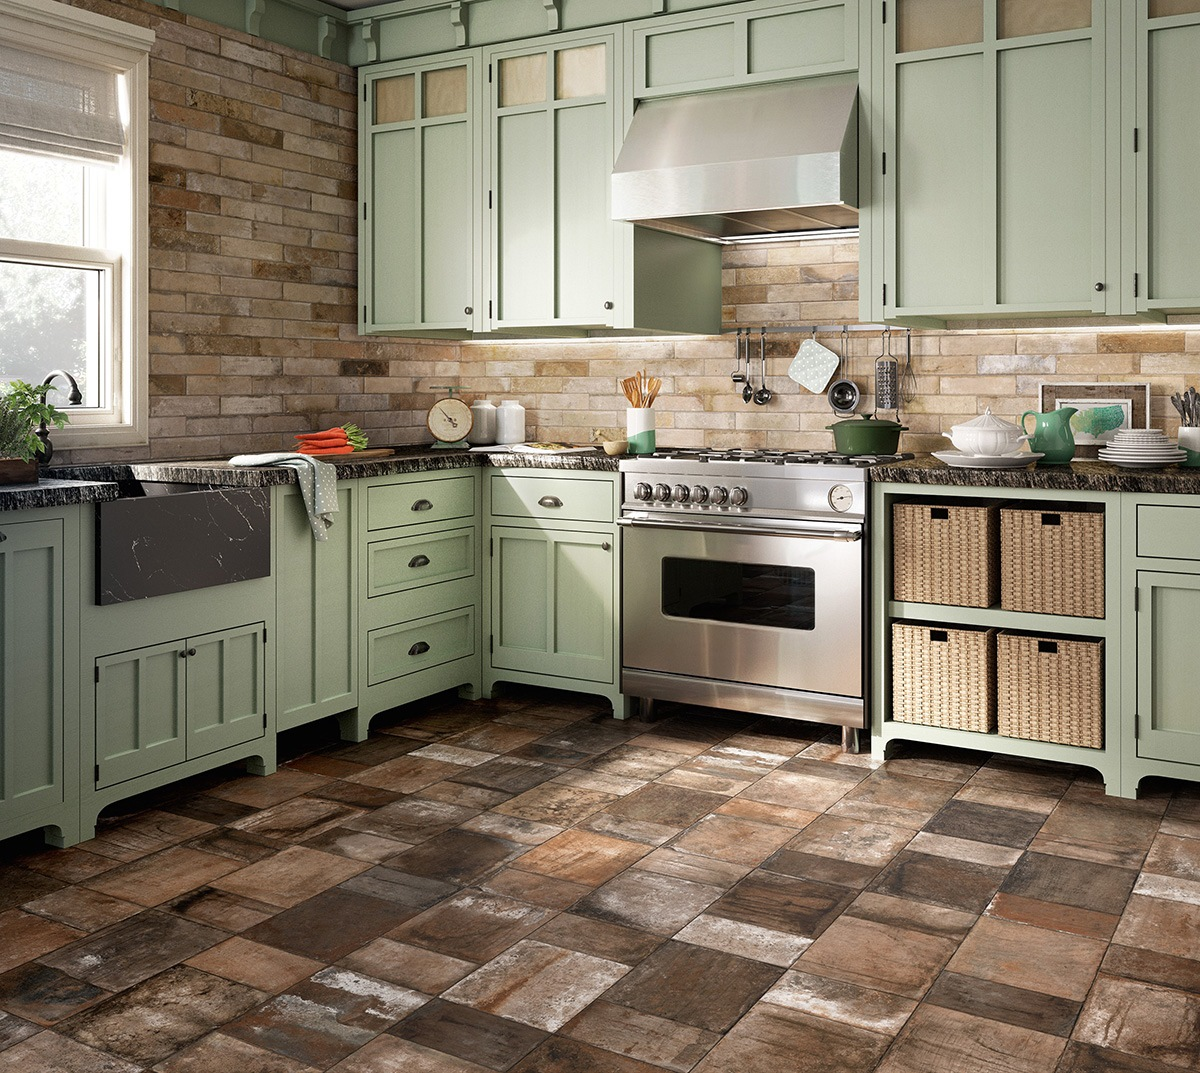 Porcelain stoneware floors in kitchen country style